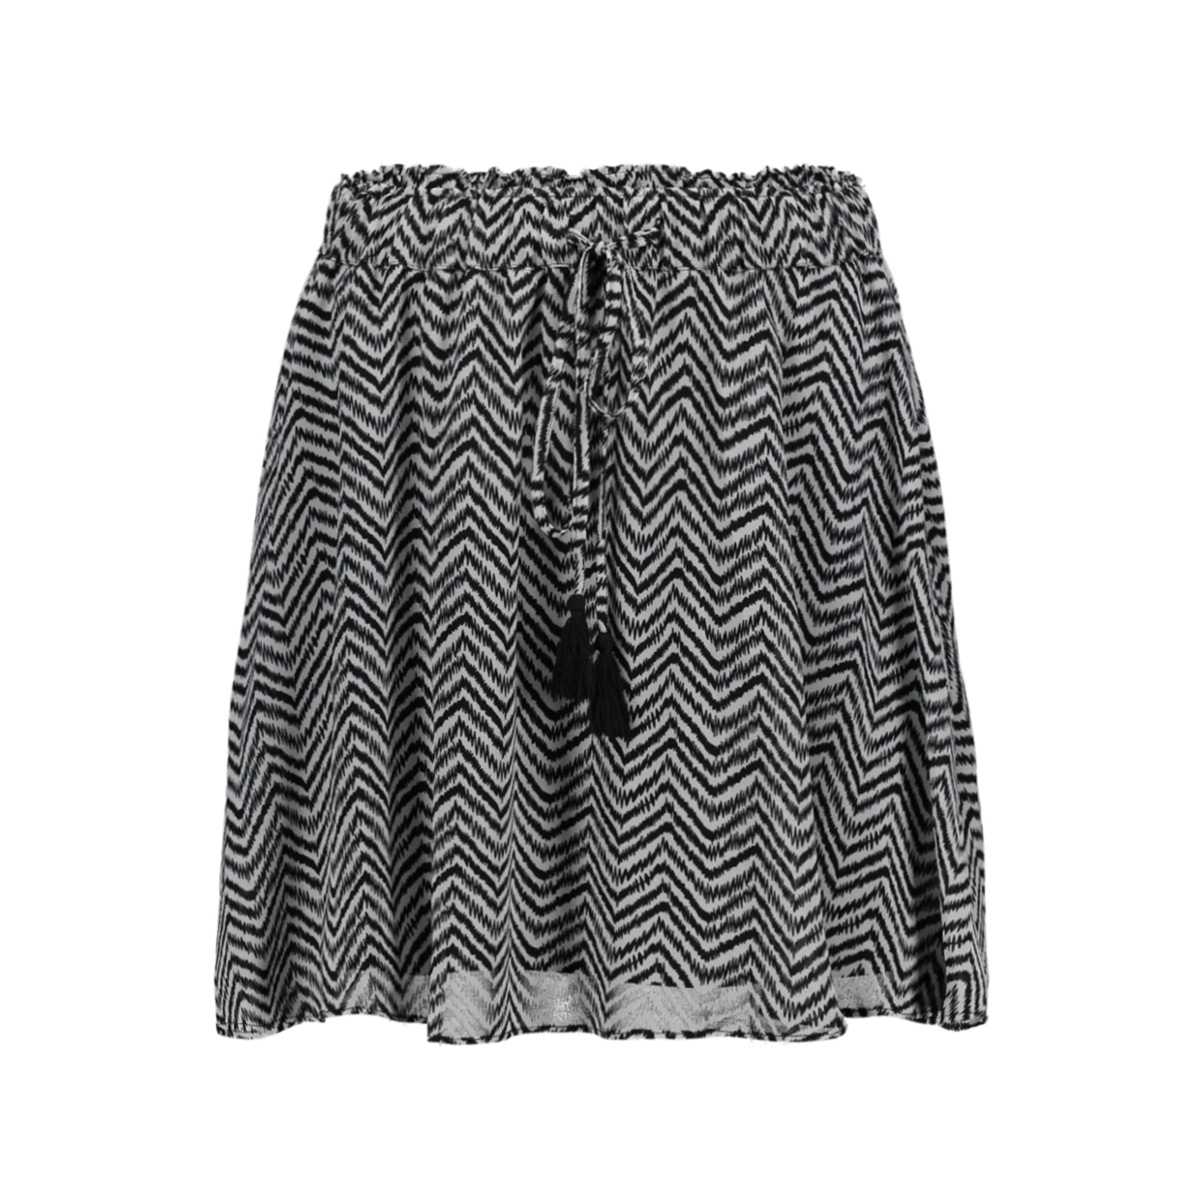 maja skirt s19 21 circle of trust rok 1355 crazy zebra